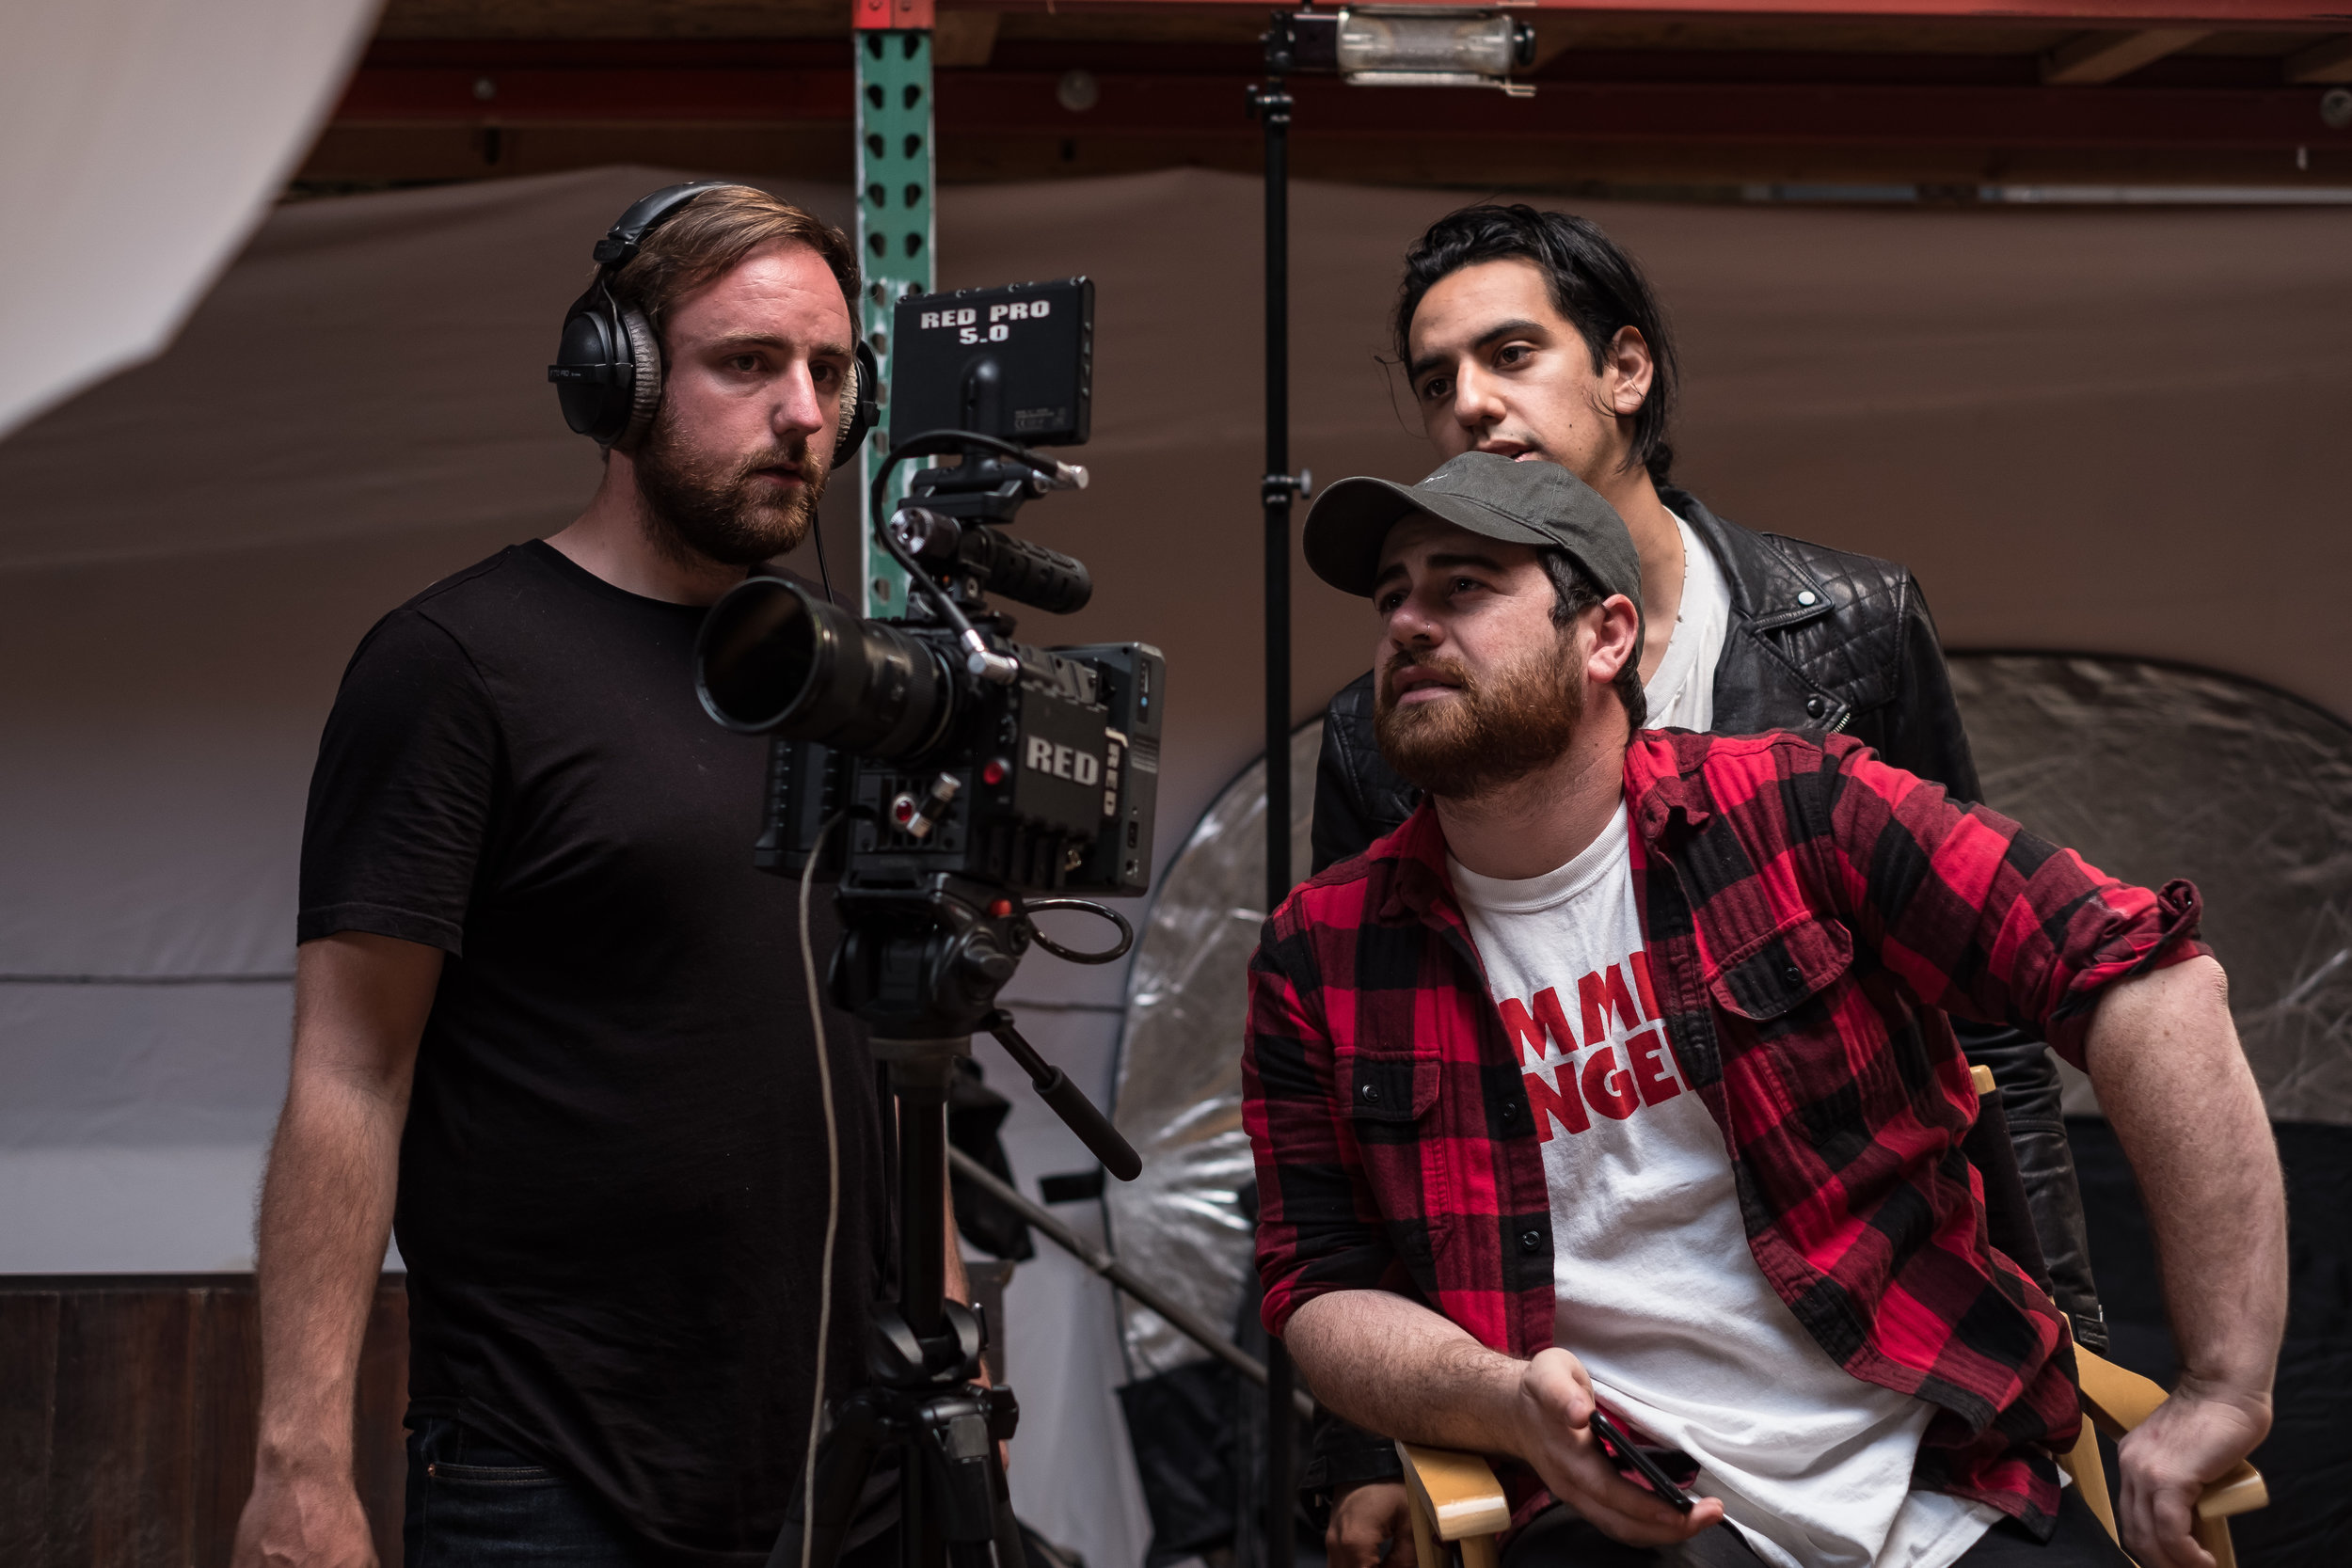 MEET THE FILMMAKERS  - LEFT TO RIGHT: EVAN SCHNEIDER (DP), MICAH HAMILTON (DIRECTOR), SPENCER RILEY (ARTIST/PRODUCER)